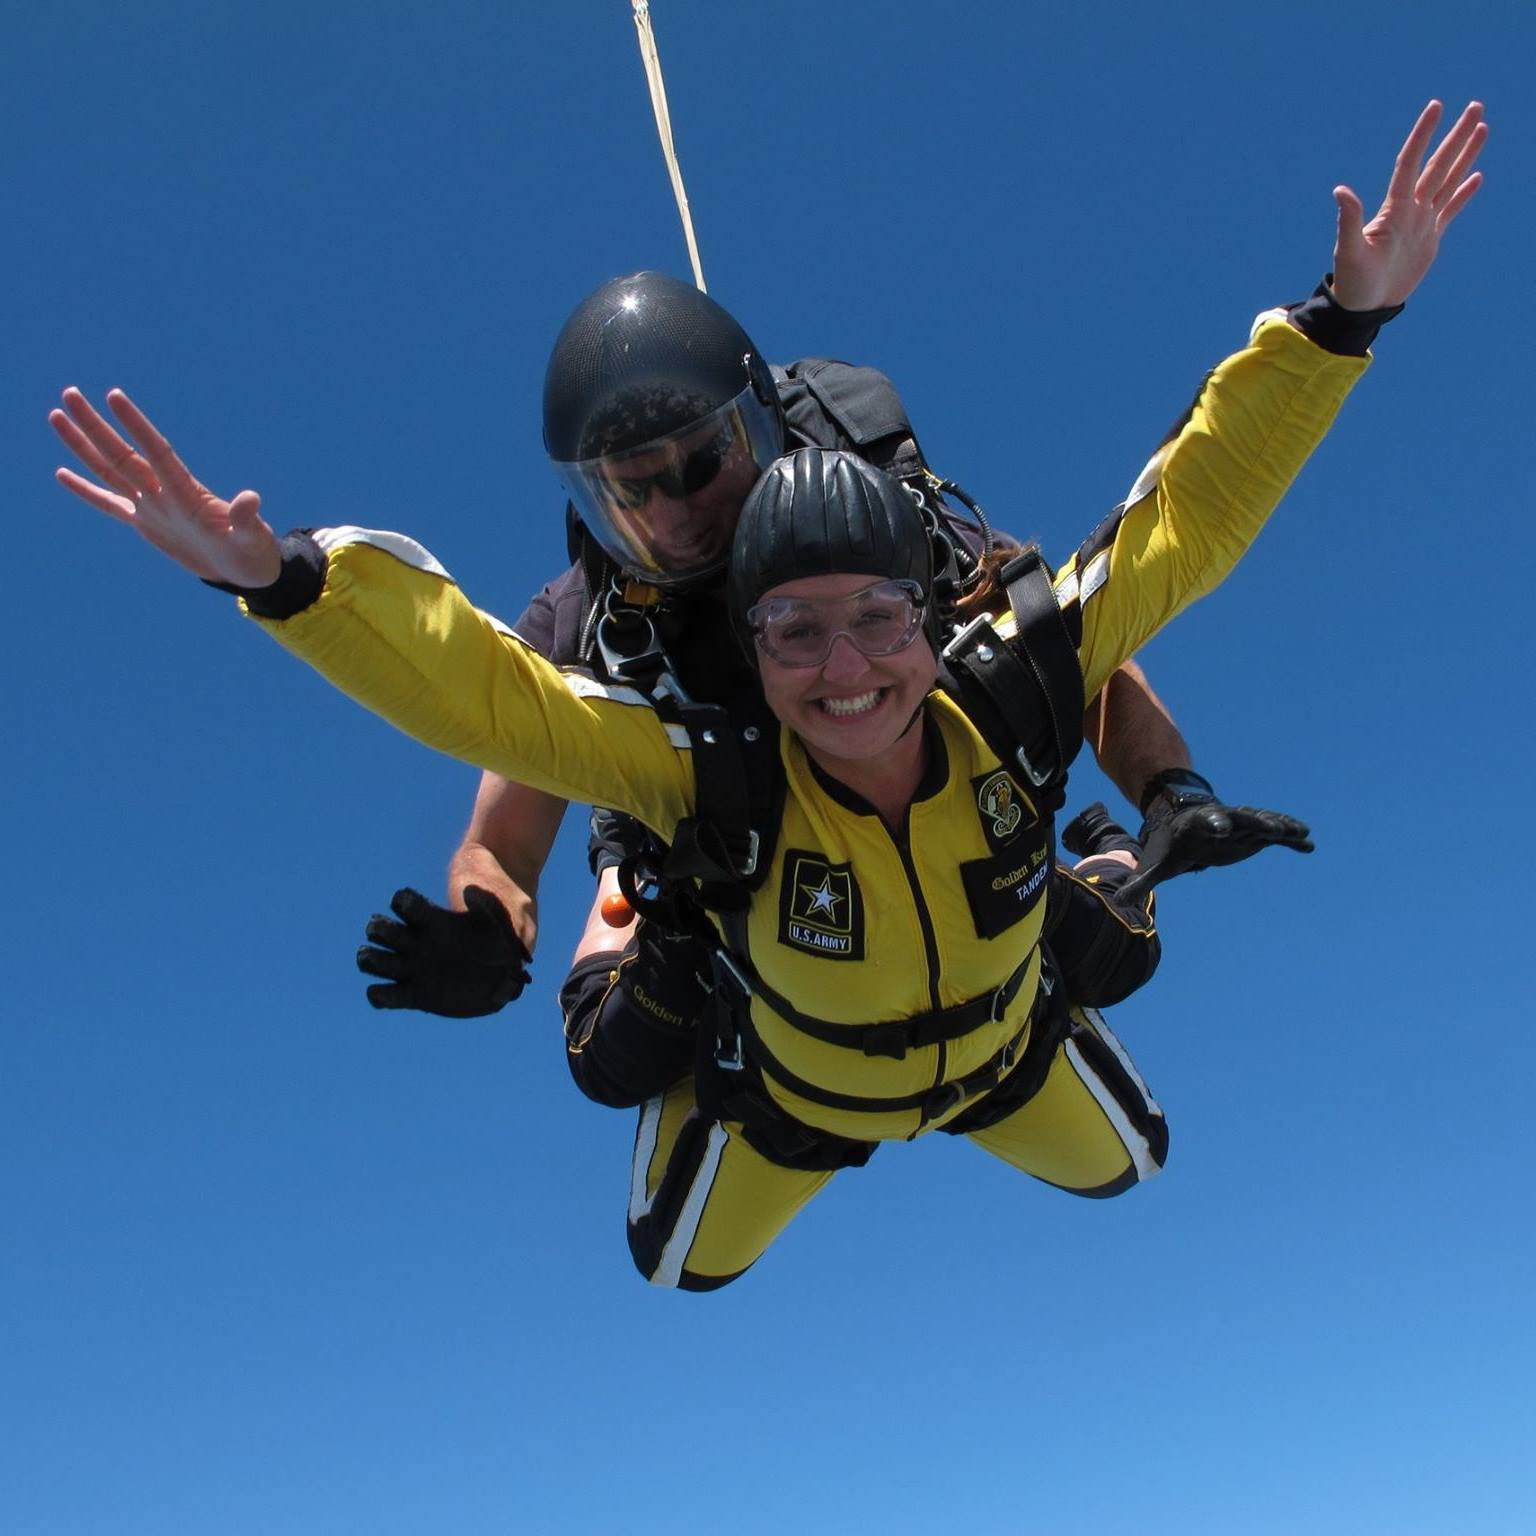 Skydiving with the Army Golden Knights!